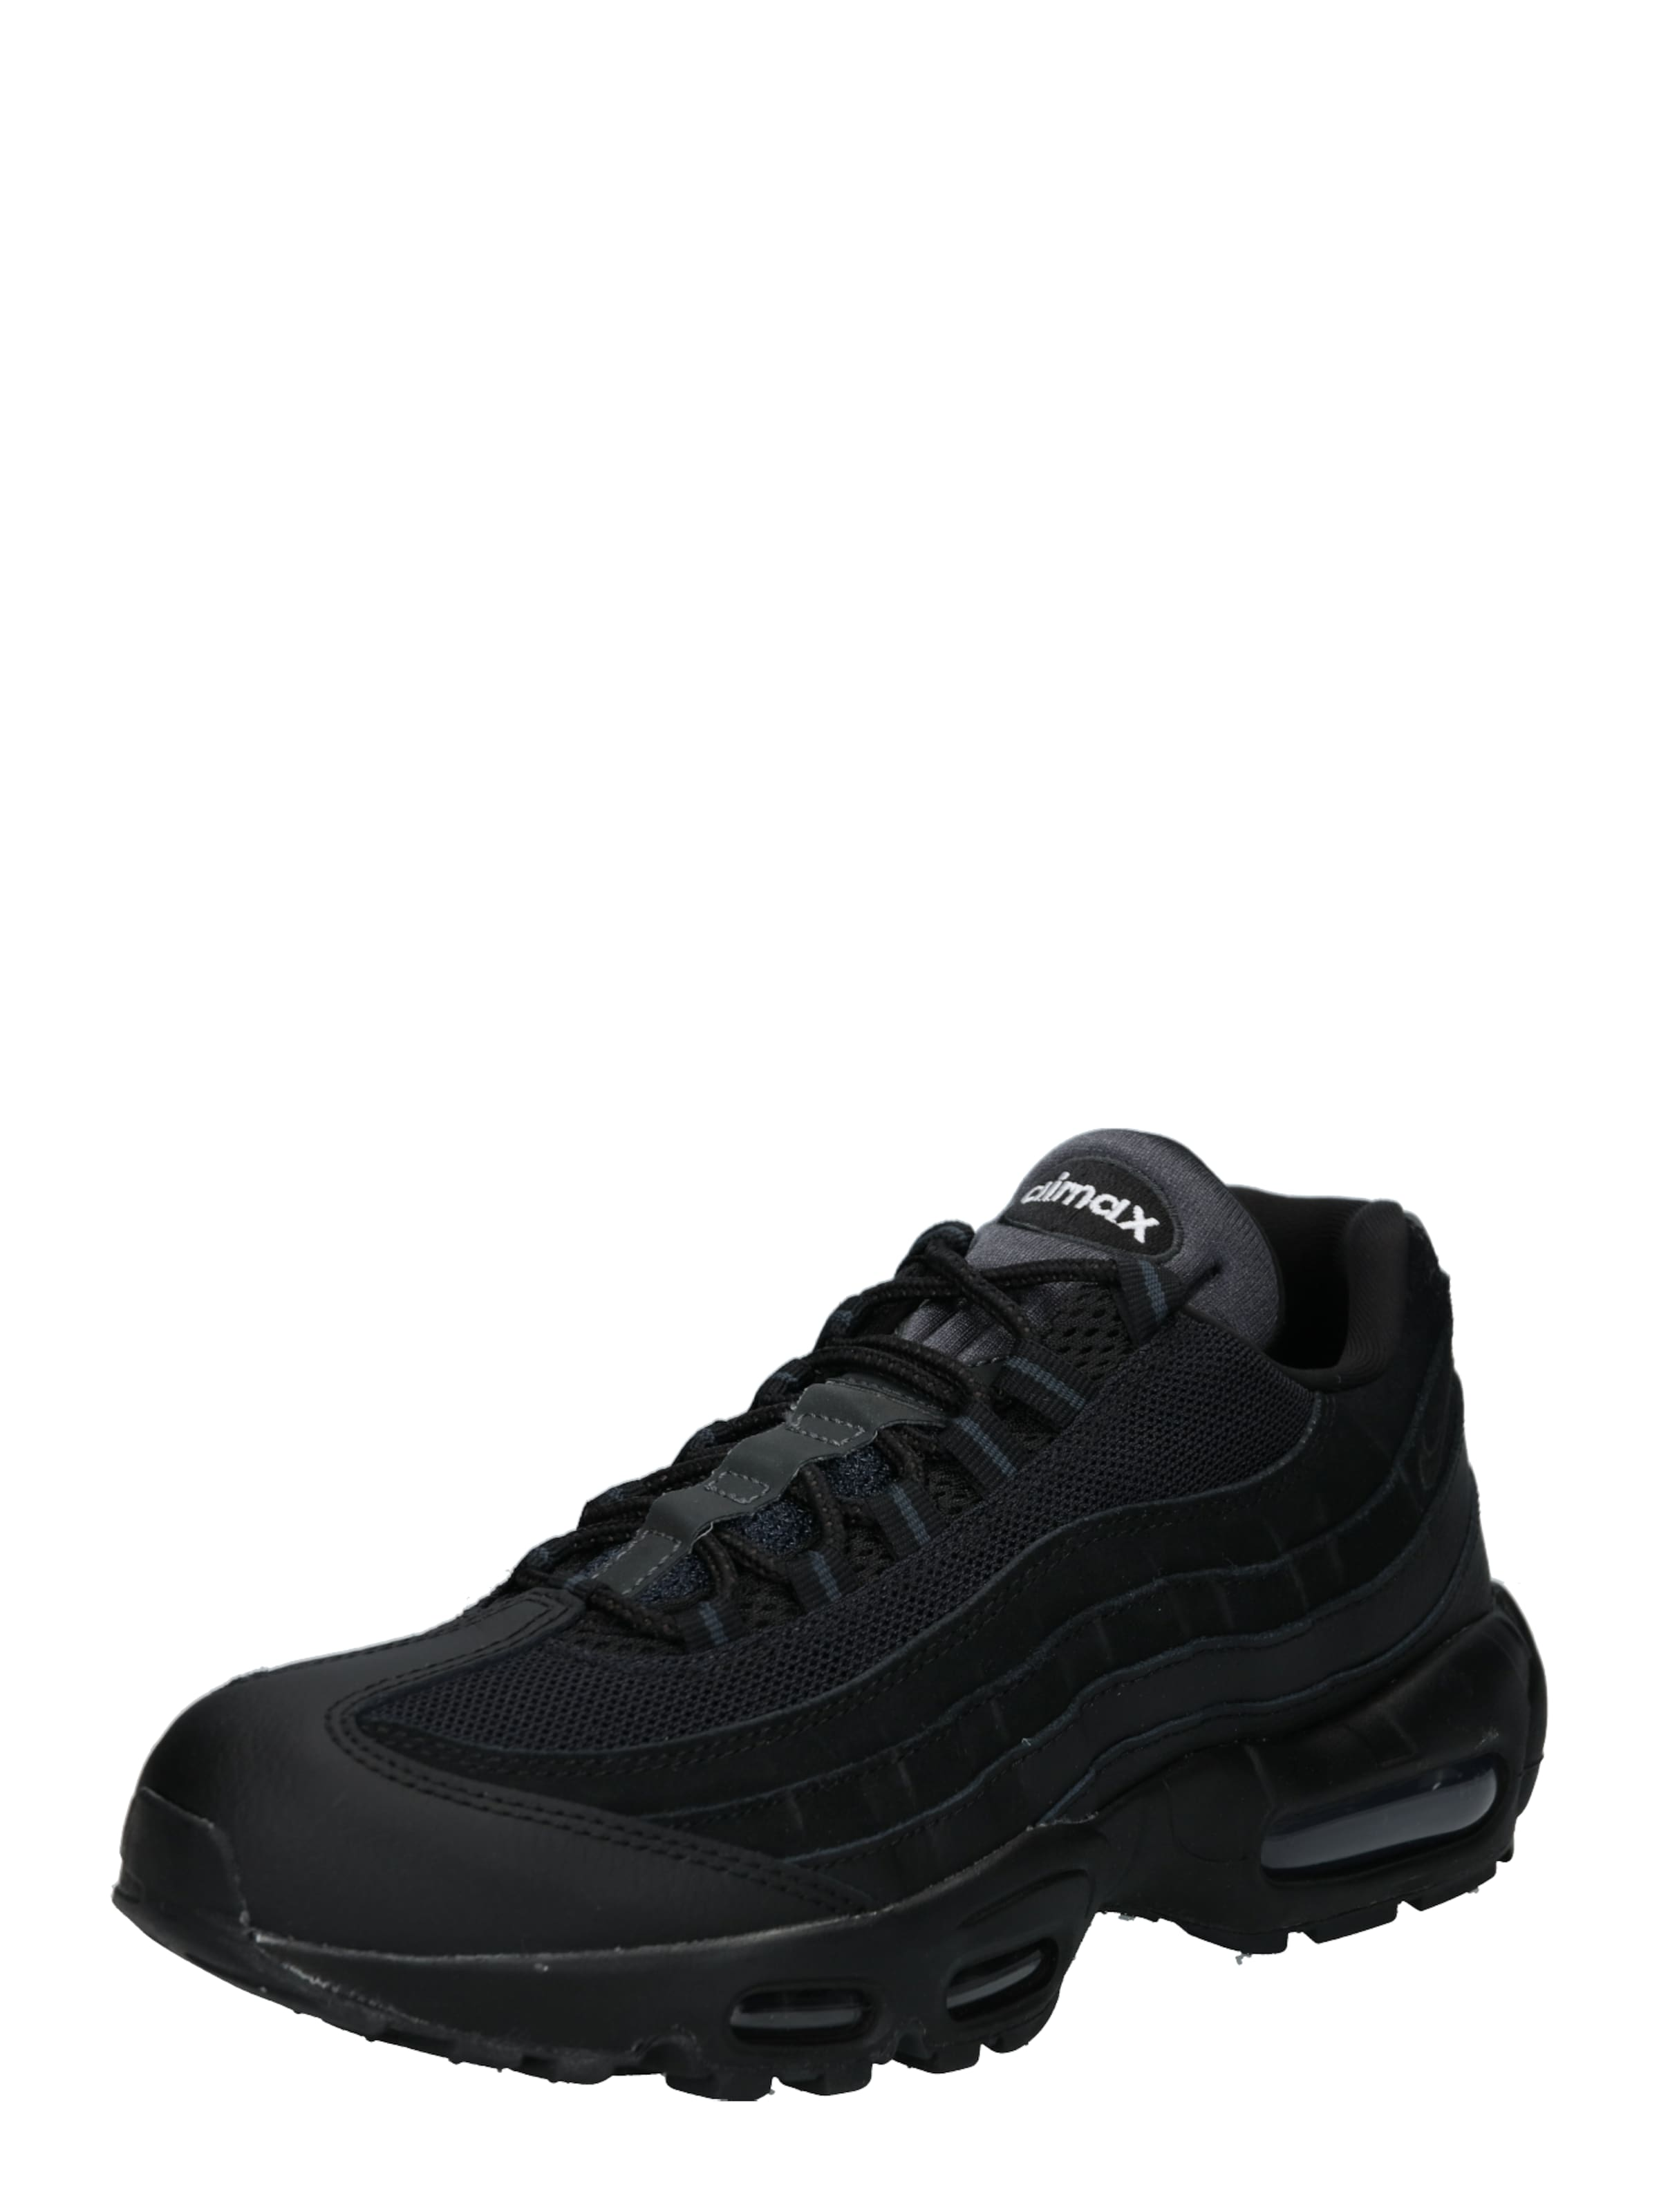 Nike Sportswear In Schwarz 95 Essential' Max 'air Sneaker kP0Own